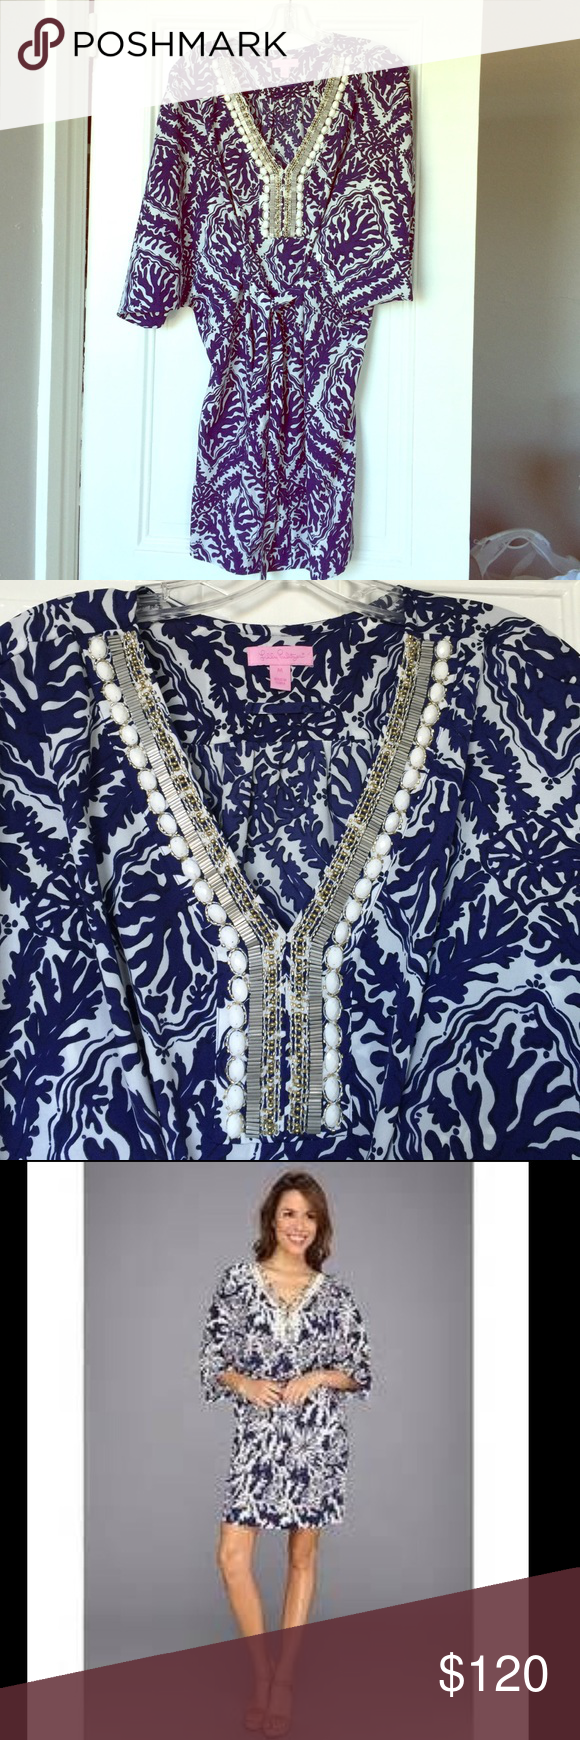 Lilly Pulitzer Wilda Caftan Dress Gorgeous navy and white print with gold detailing! Lilly Pulitzer Dresses Mini